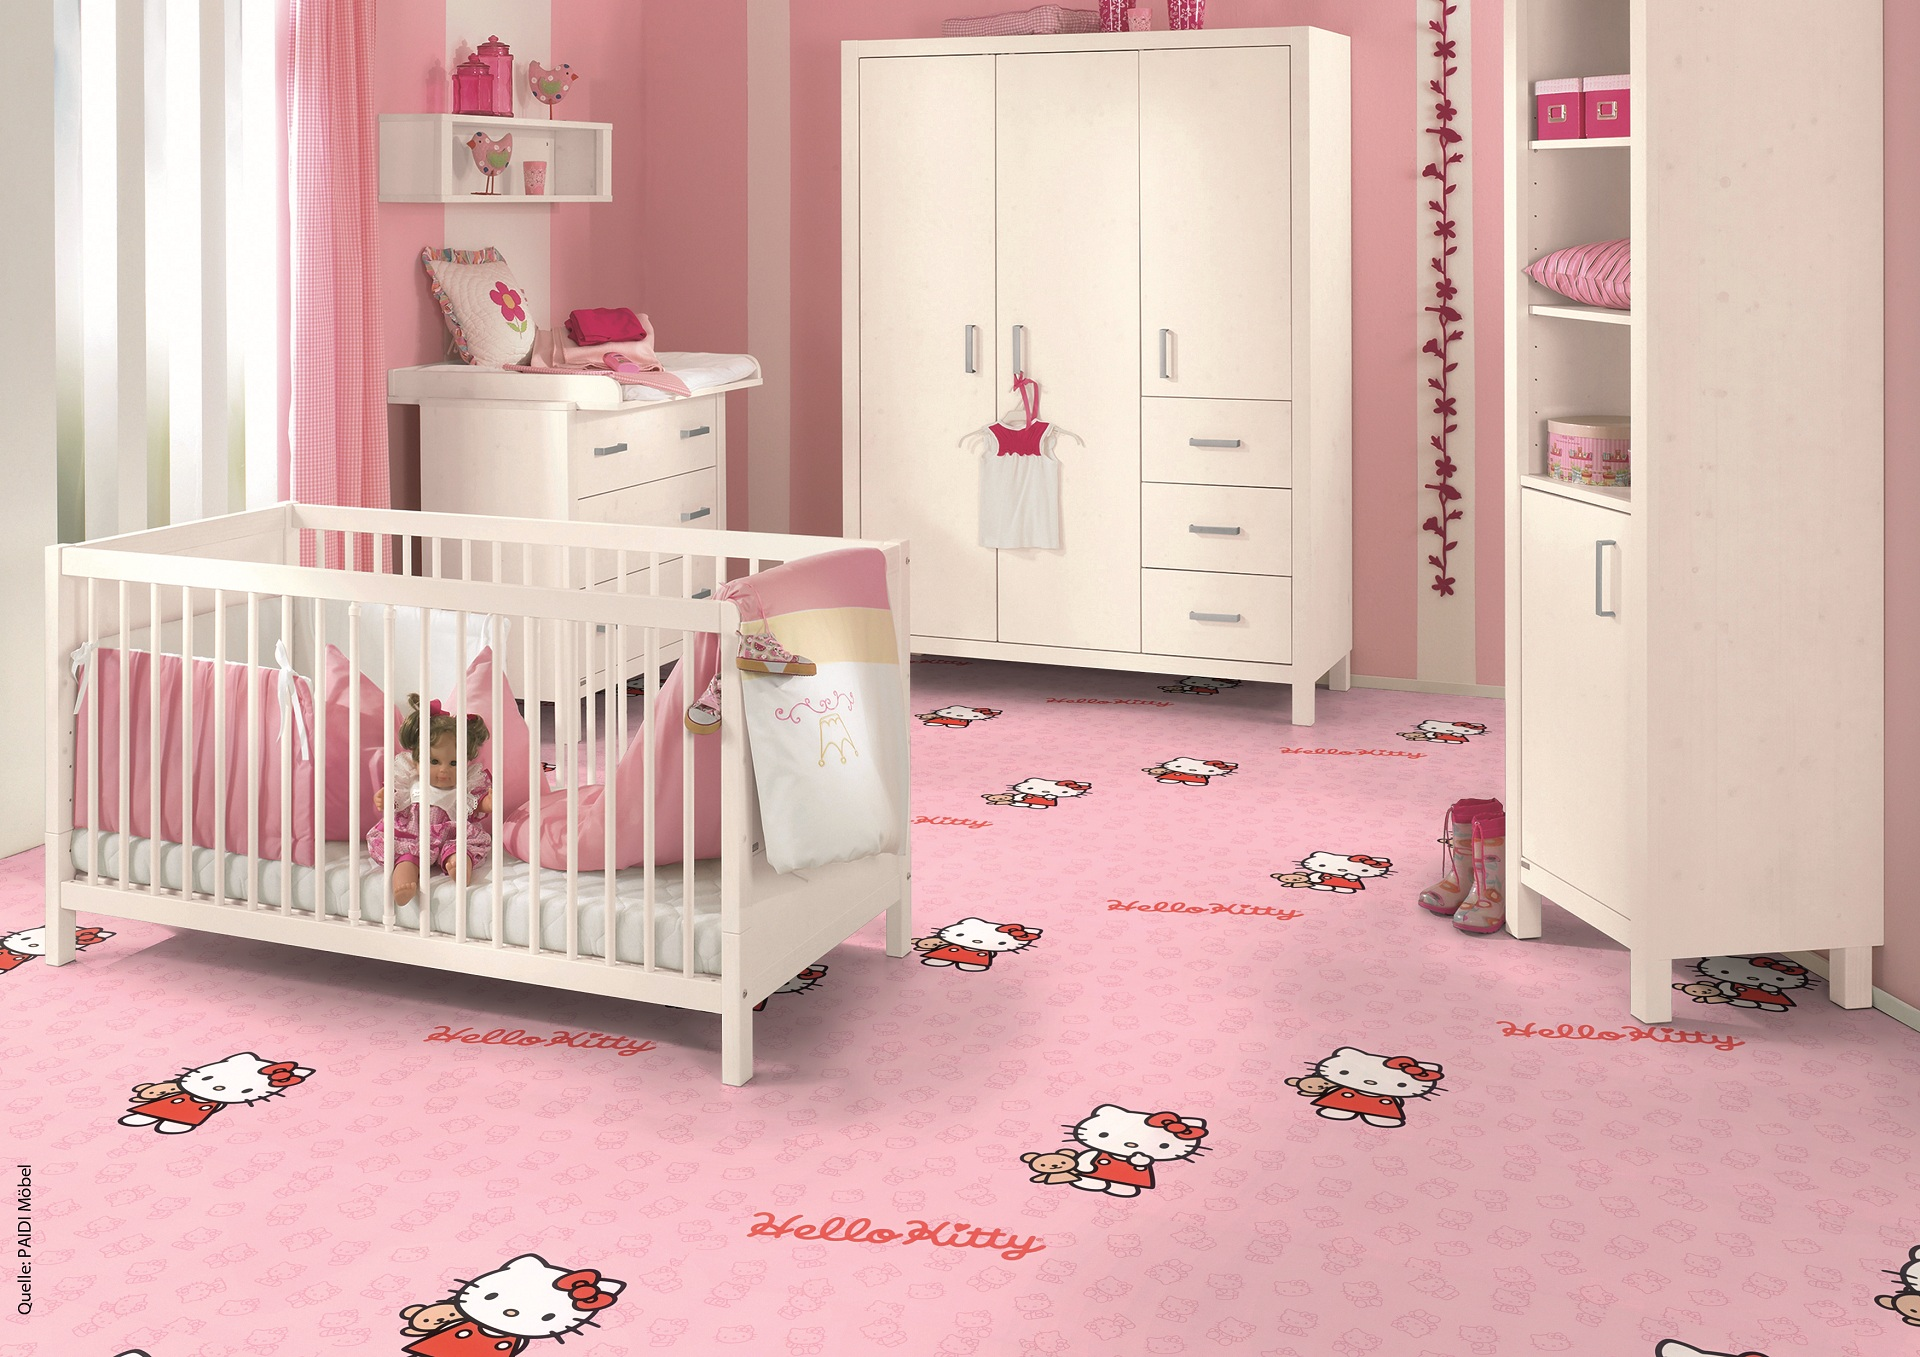 Korkboden hello kitty  Hello Kitty Korkparkett - Fußbodenbelag für Prinzessinnen